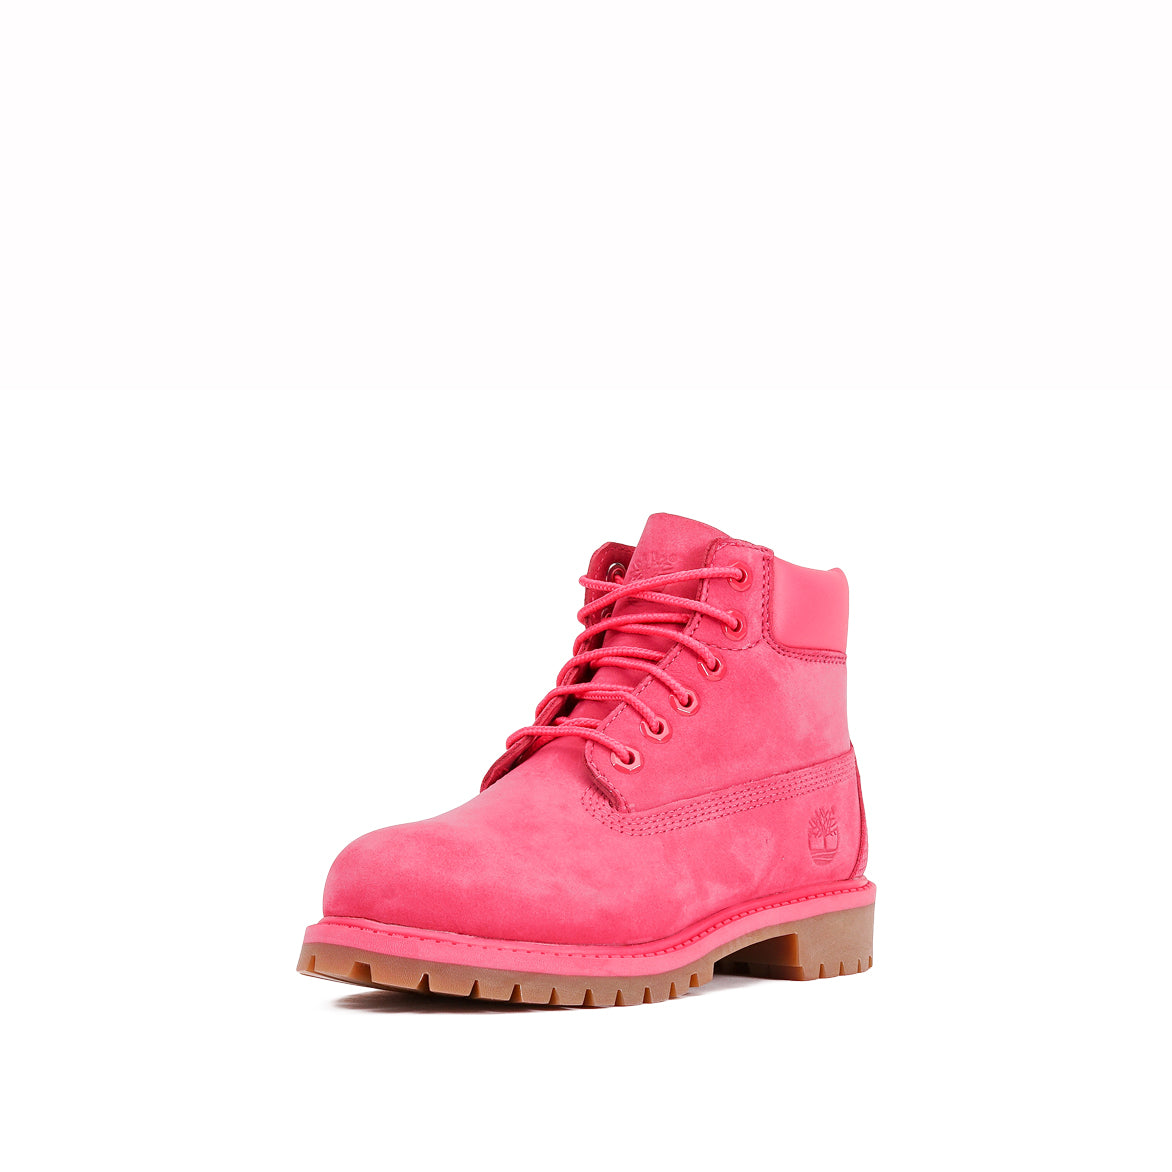 "6"" PREMIUM WATERPROOF BOOT (YOUTH) - PINK"